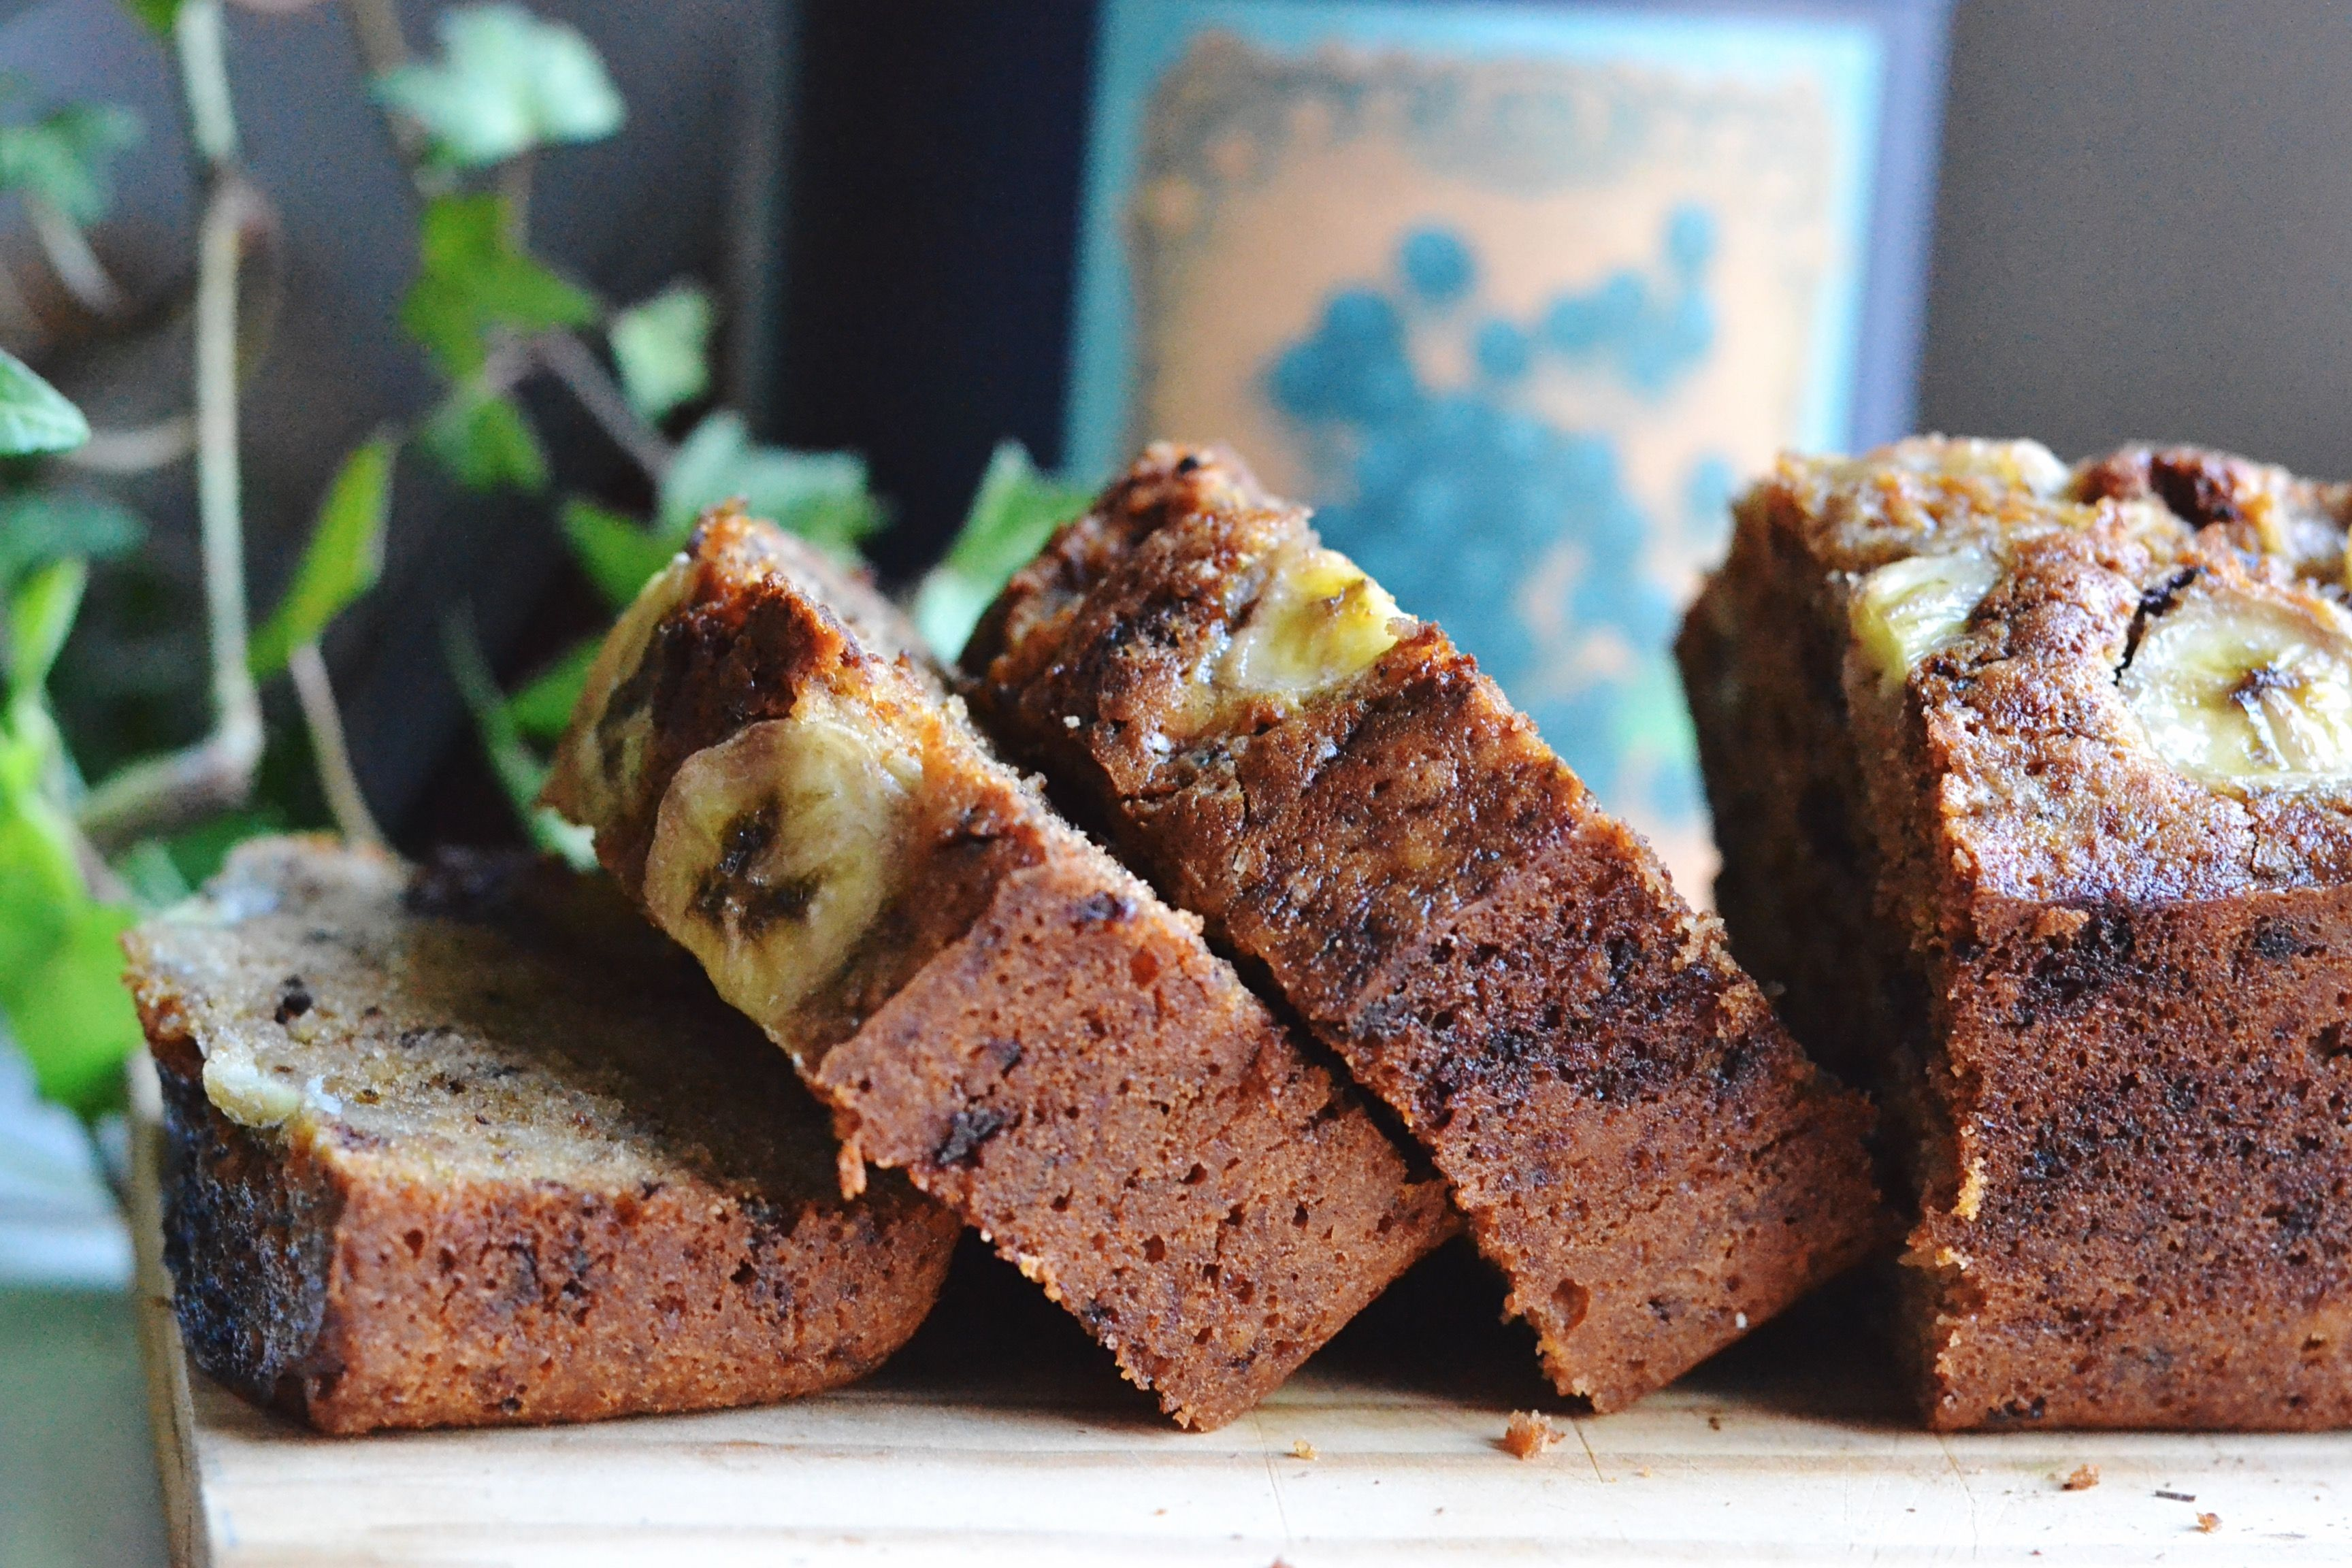 Try this - Gluten-free, blueberry banana bread, perfect for runners